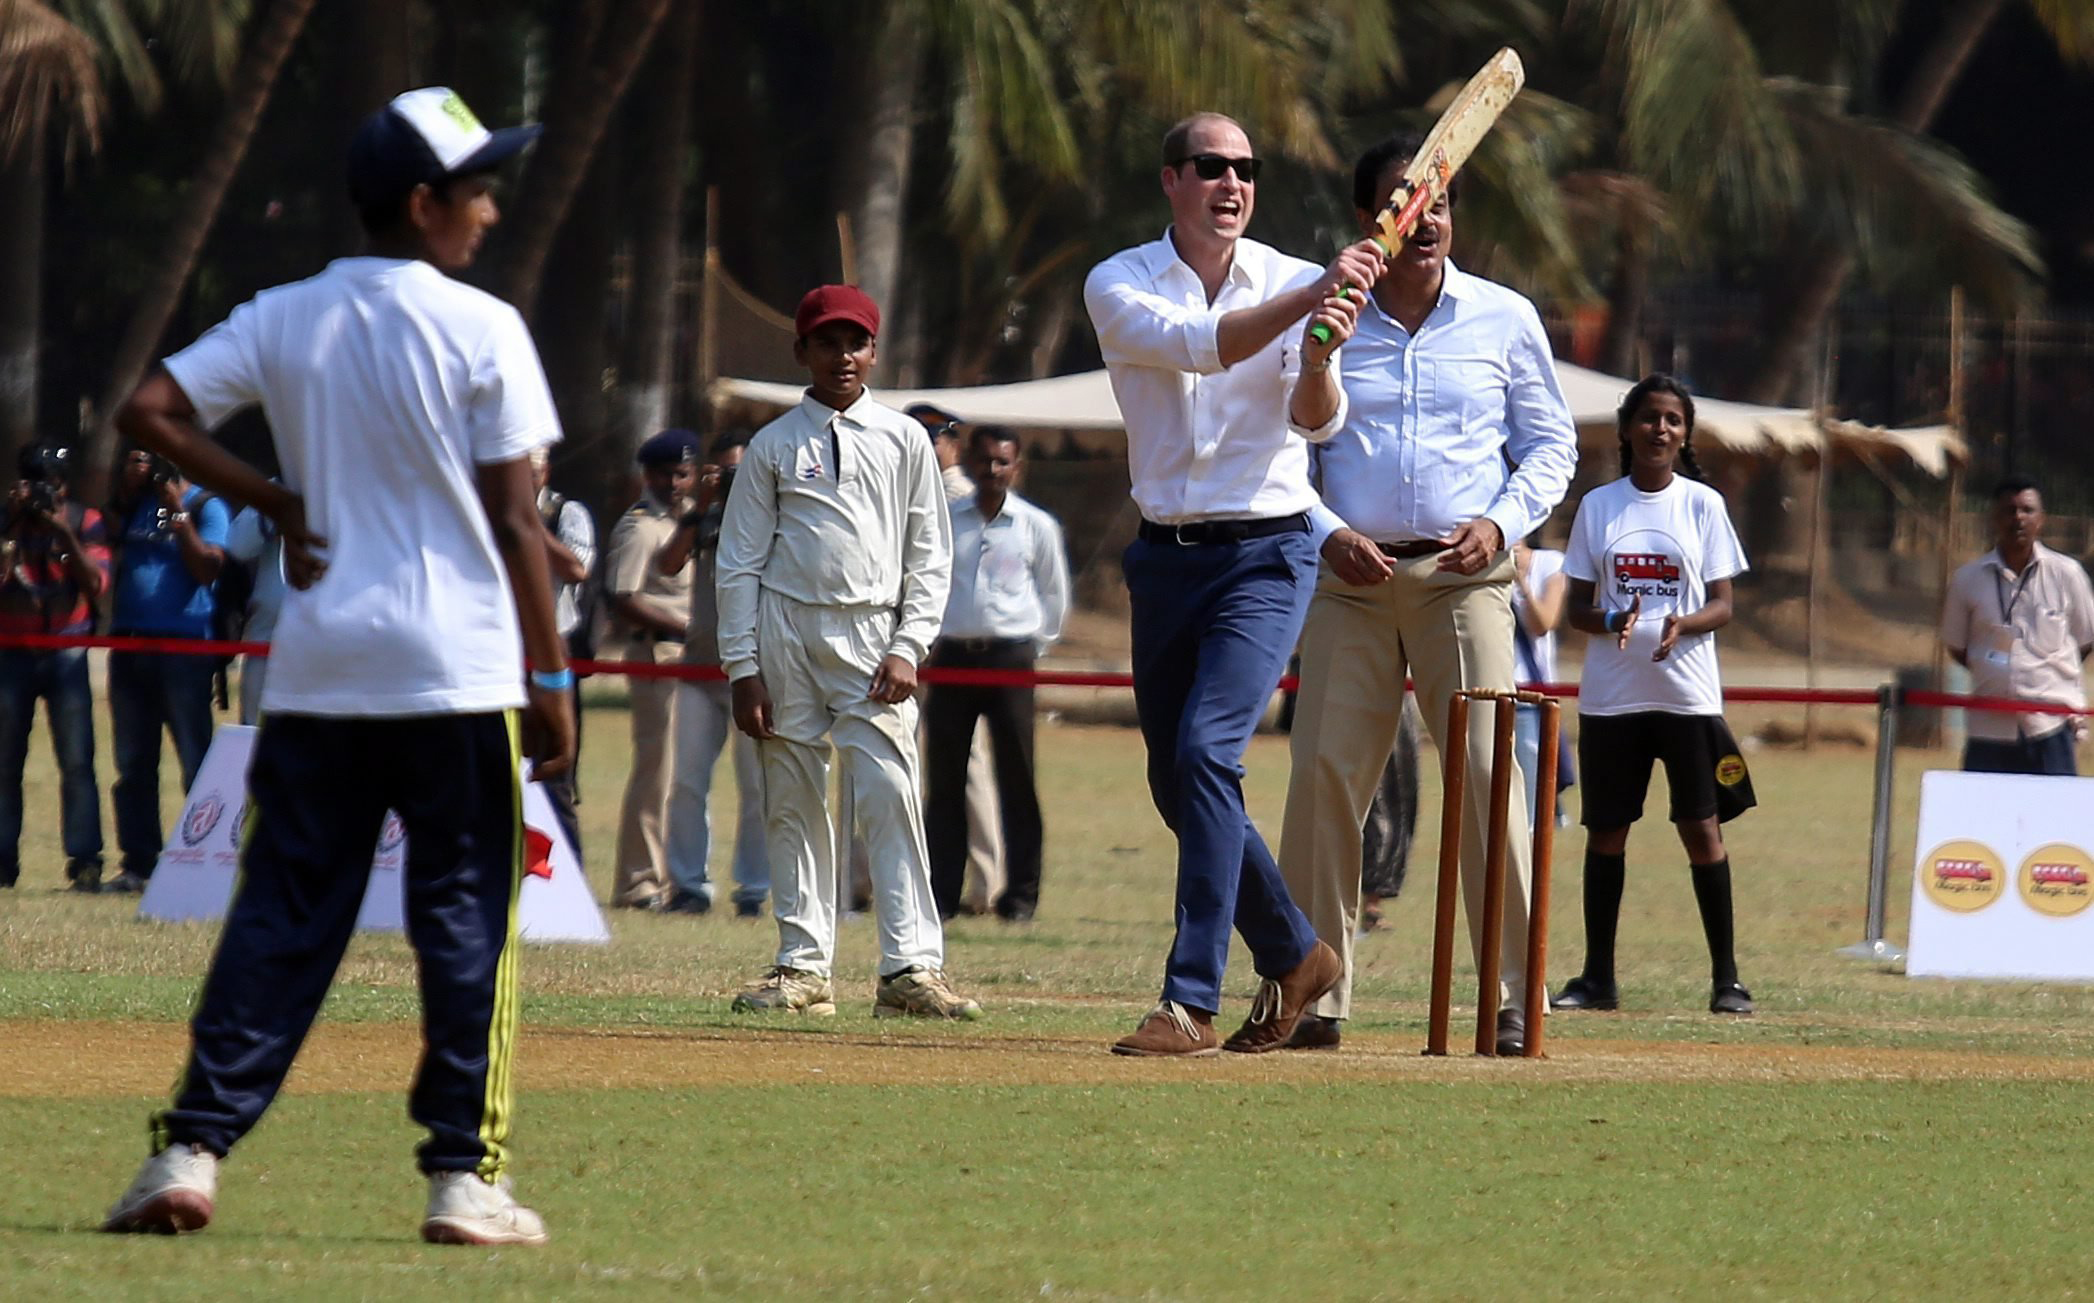 Prince William plays cricket along with children at Oval Maidan recreational ground in Mumbai, India on April 10, 2016.